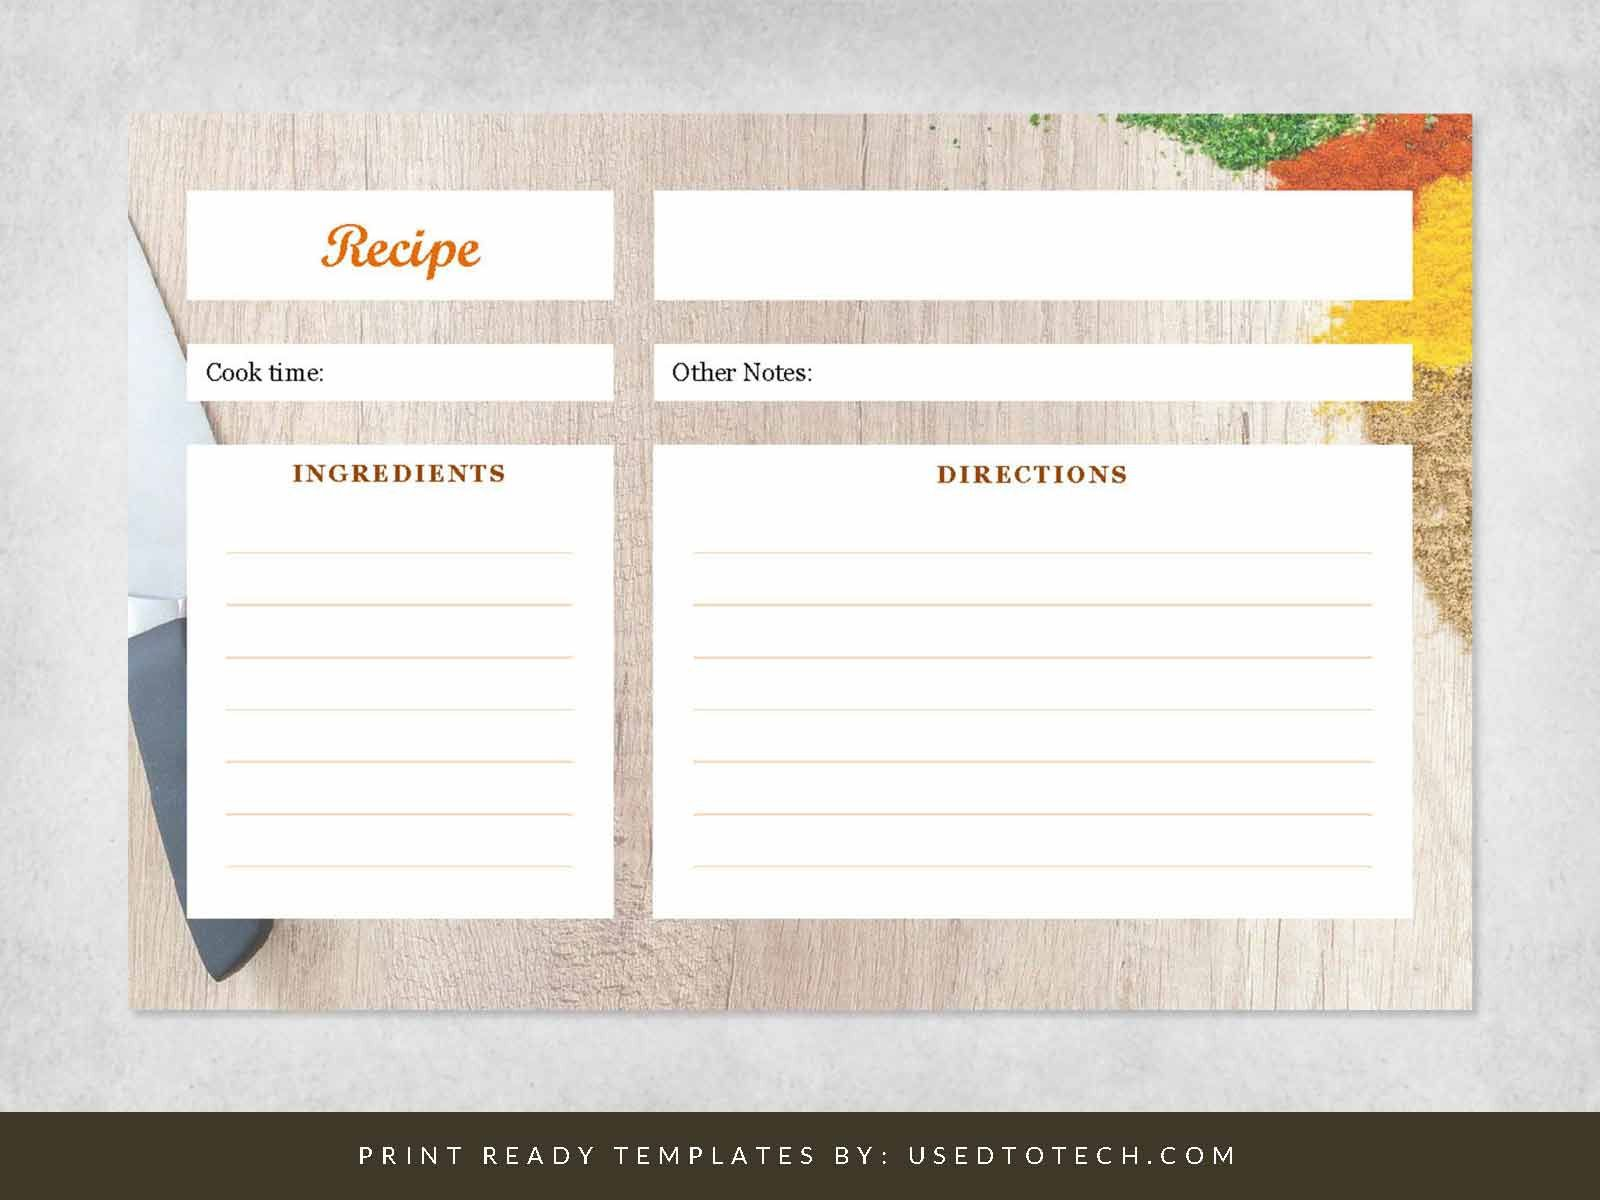 000 Unbelievable Recipe Card Template For Word Sample  Printable Blank FillableFull